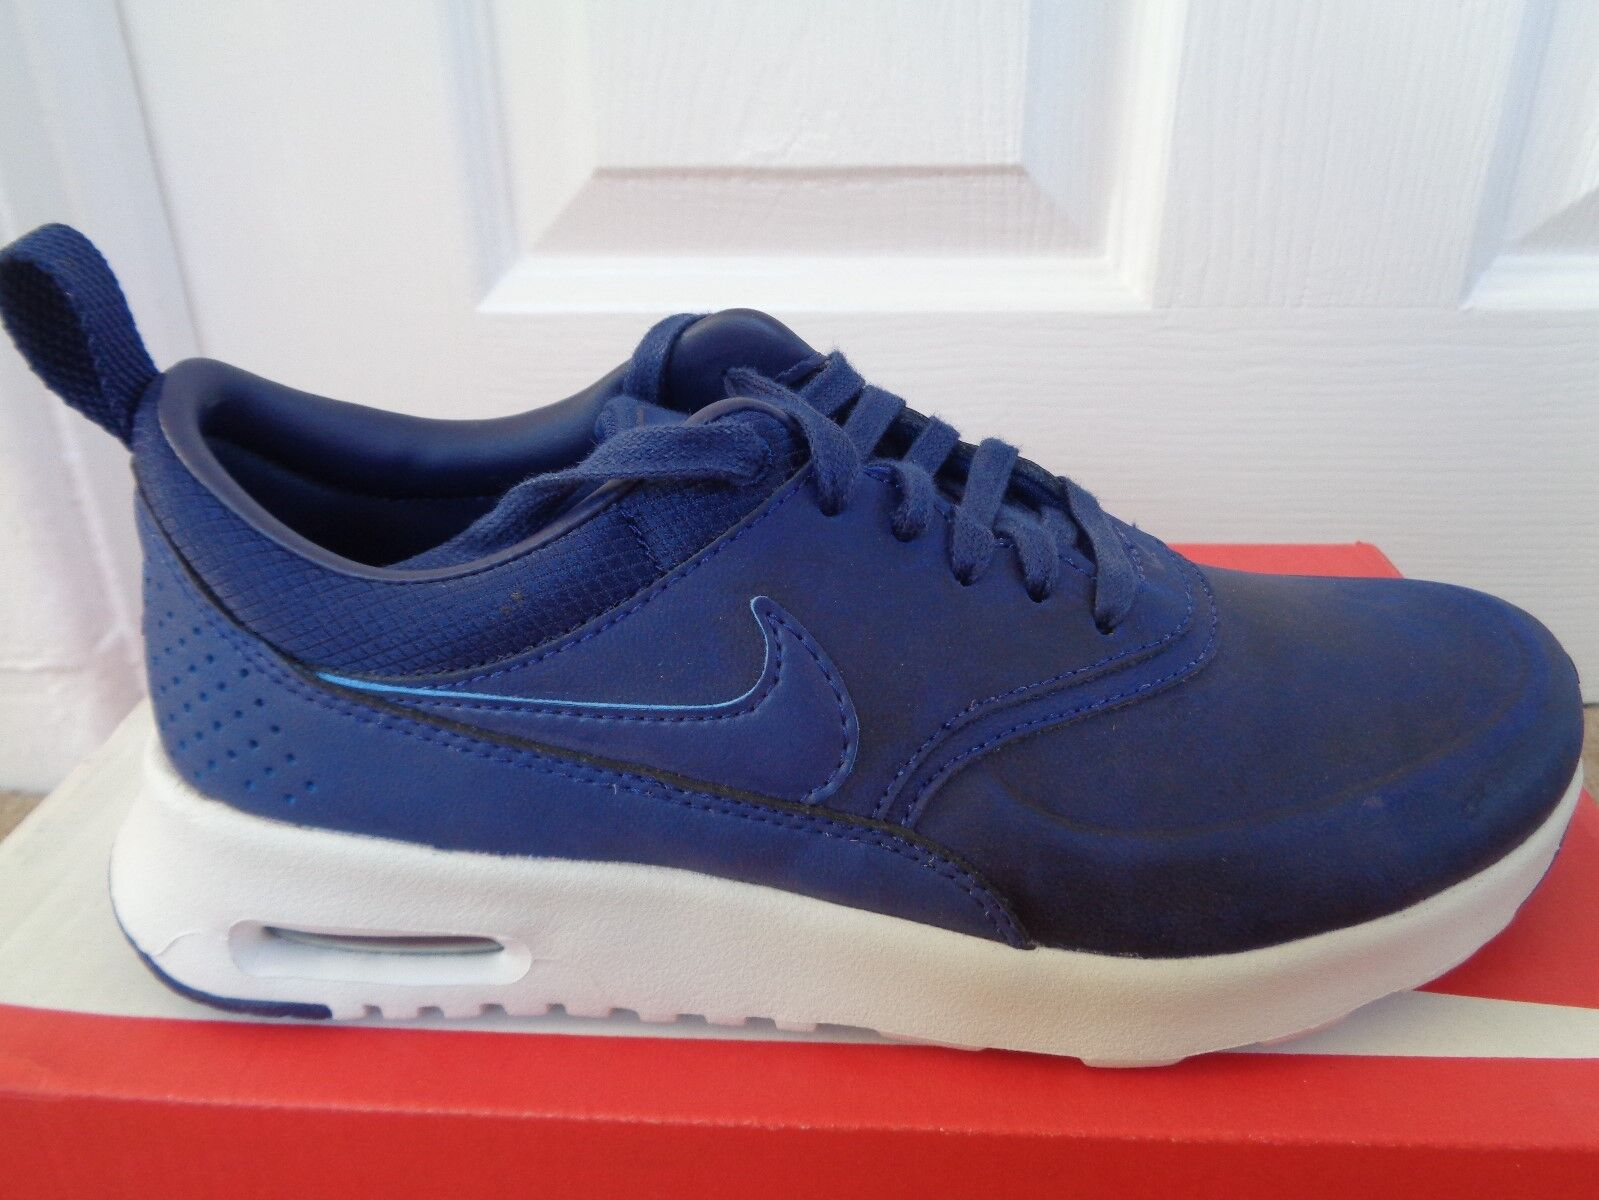 Nike Air Max Thea PRM womens trainers trainers trainers 616723 401 uk 2.5 eu 35.5 us 5 NEW+BOX 3c846d